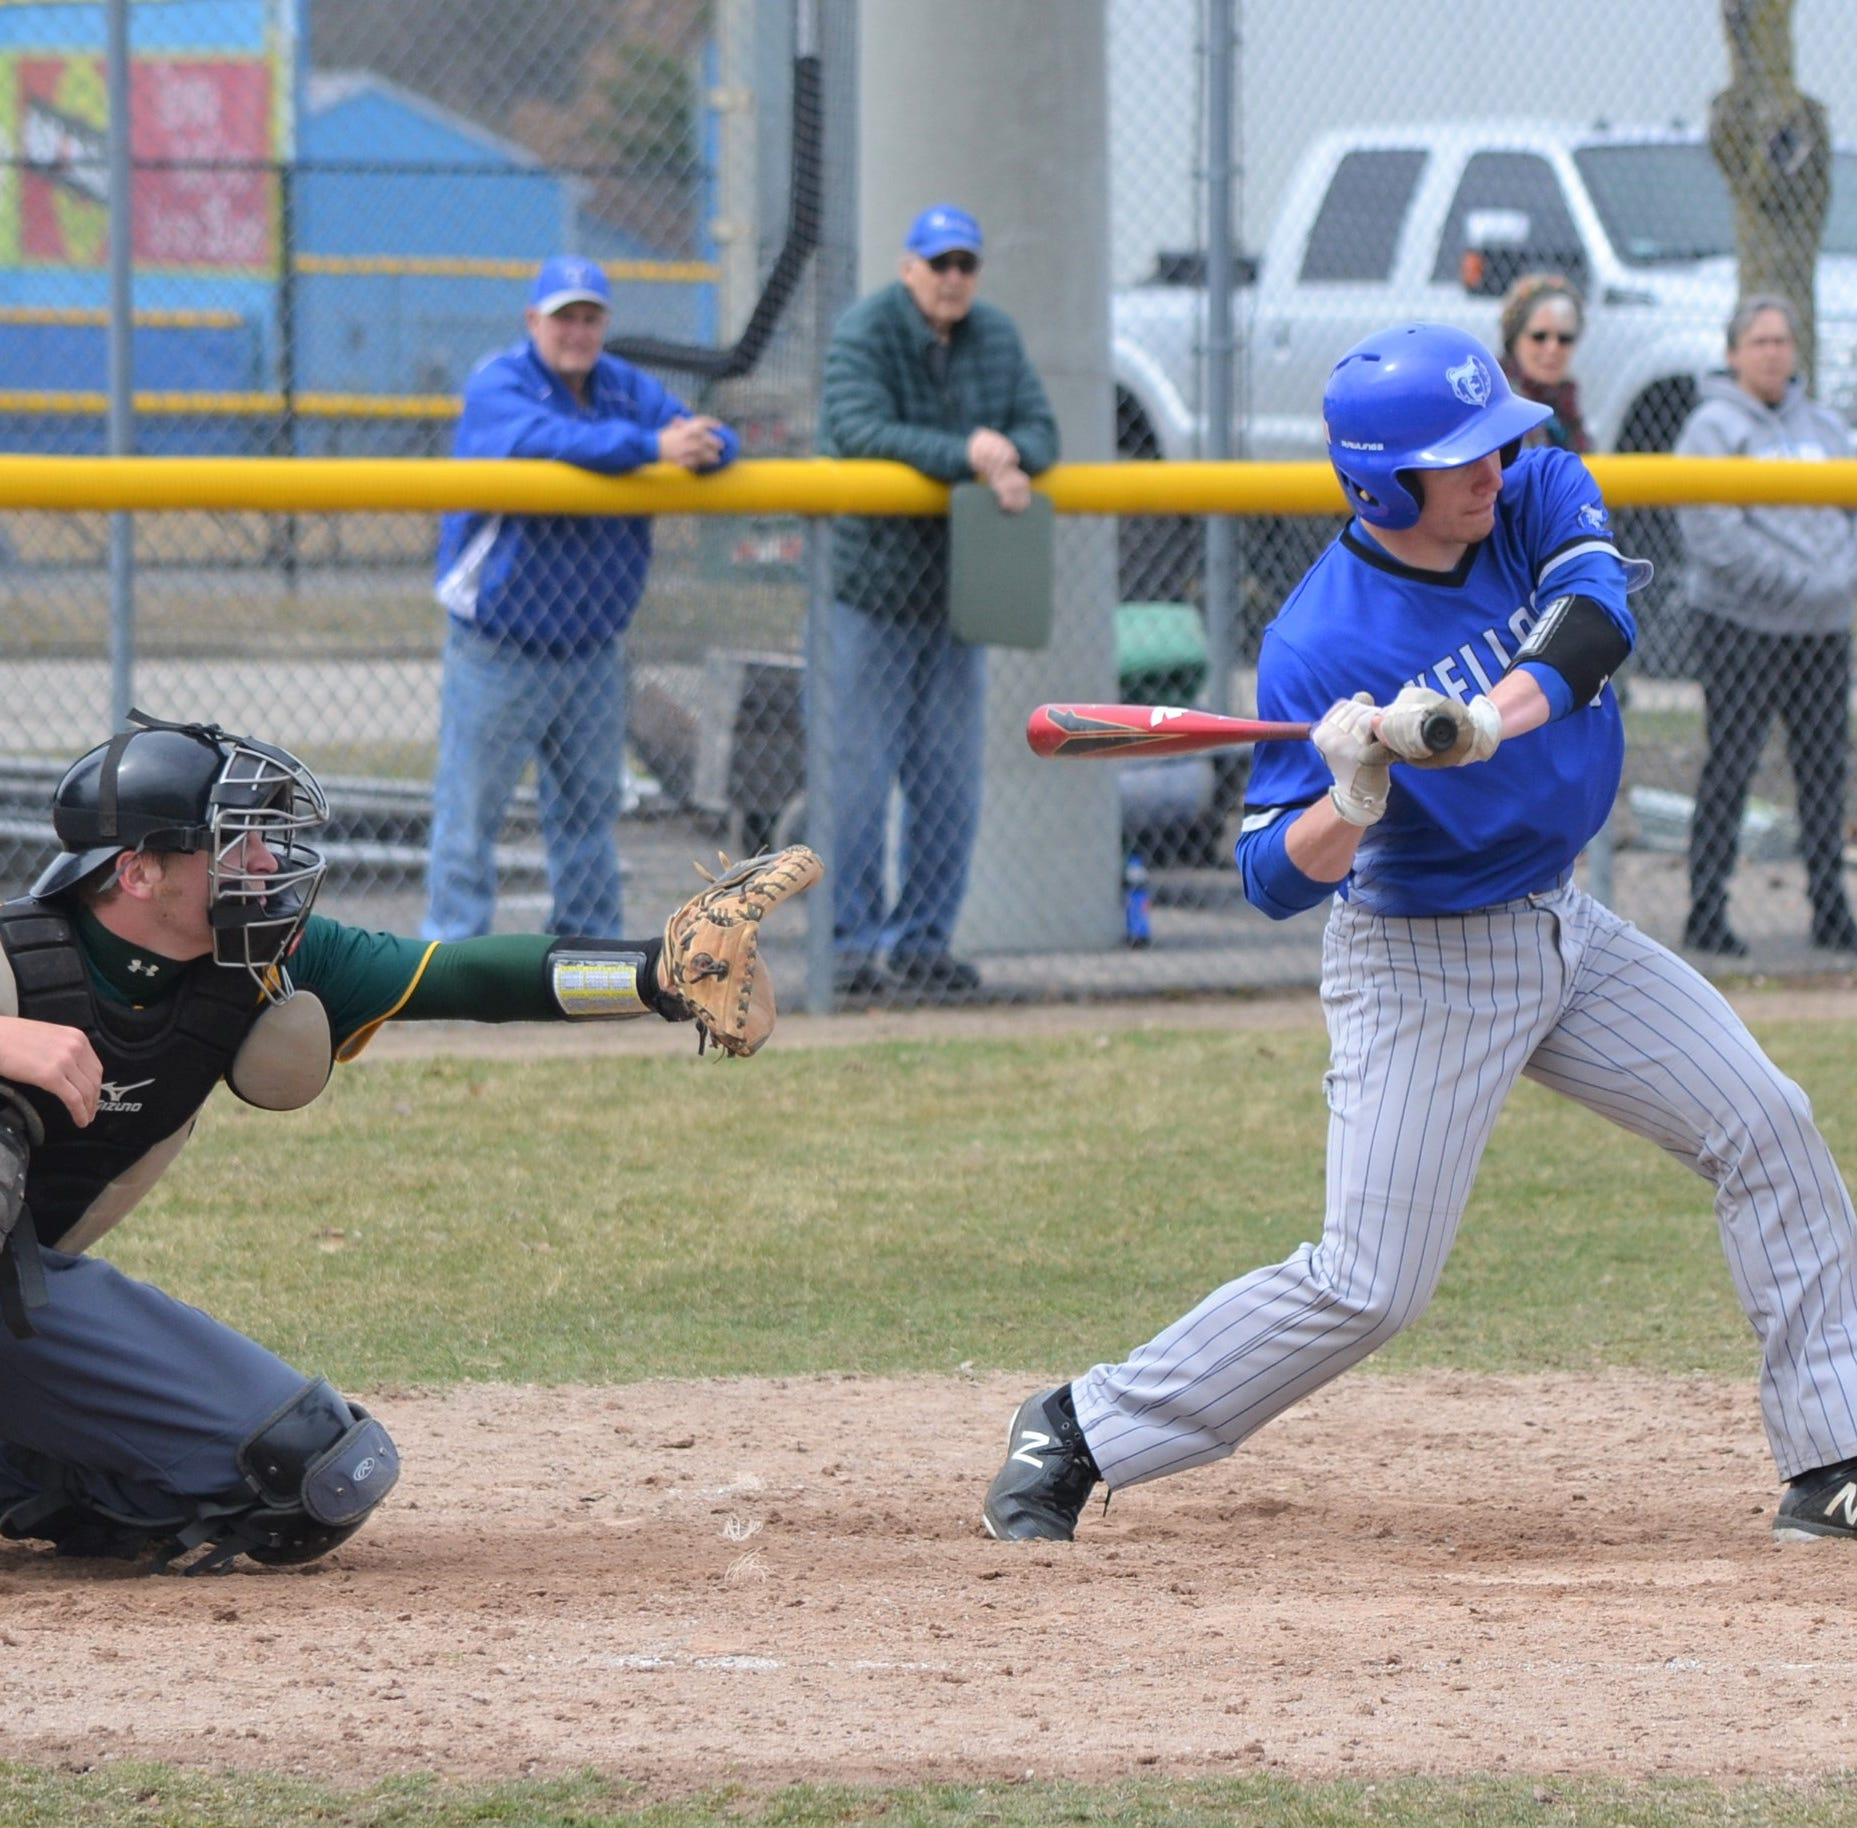 After slow start to season, Kellogg CC baseball on a roll in conference play